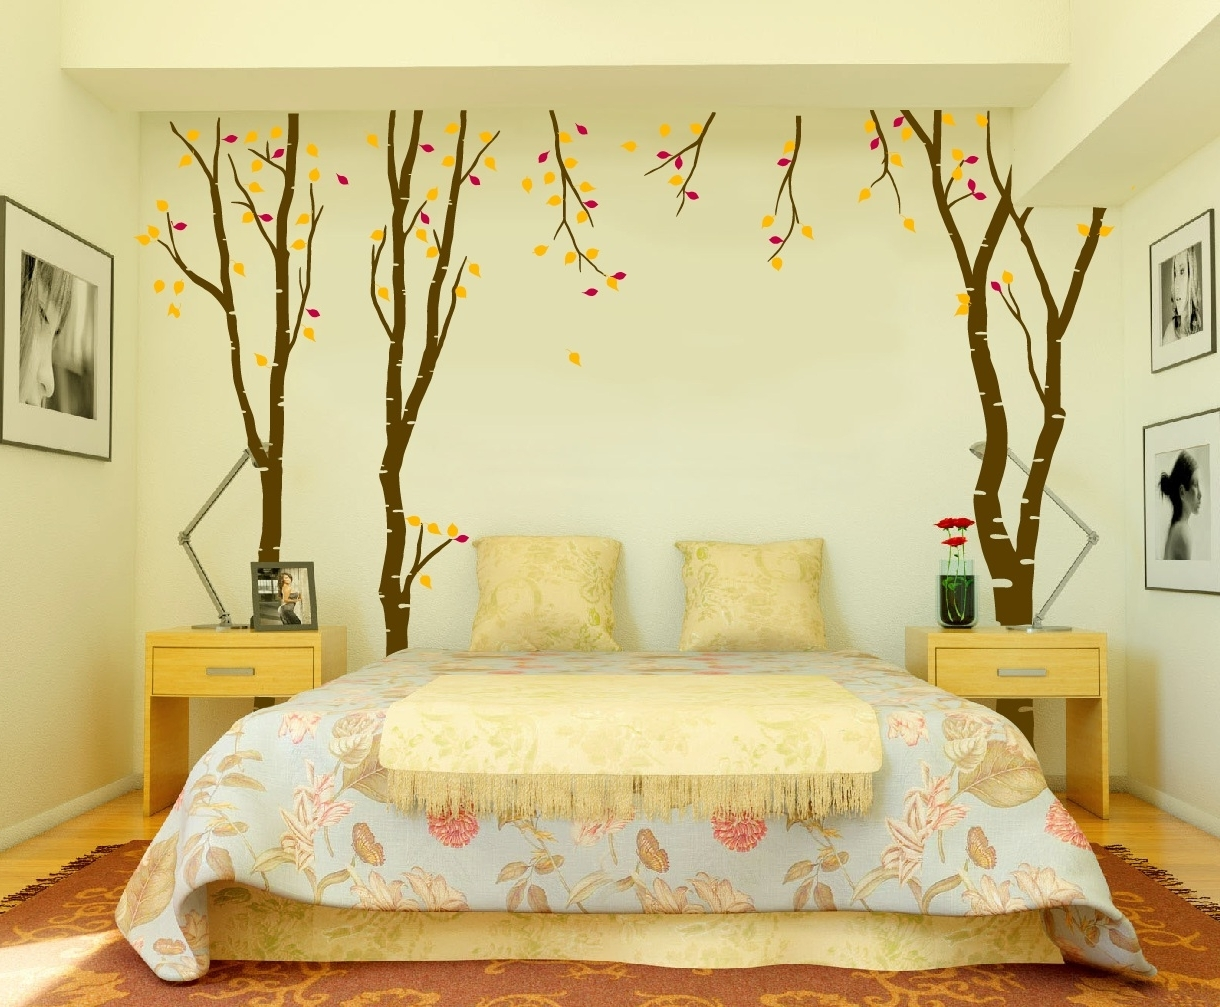 2018 Bedroom Wall Art Designs For Living Room Best Artwork For Bedroom Throughout Wall Art For Bedroom (View 12 of 15)